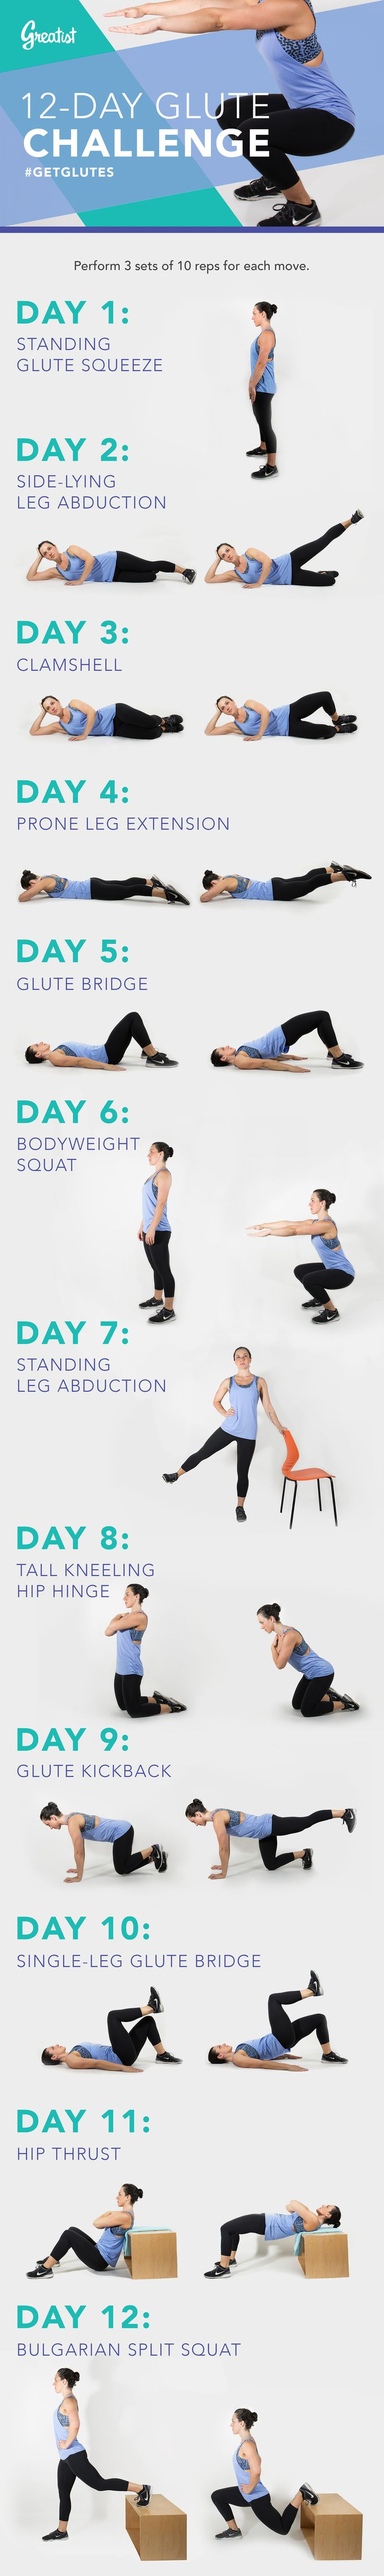 Because you need a strong backside year-round, not just for beach season. #glute #challenge #monthlychallenge http://greatist.com/discover/glute-activation-challenge